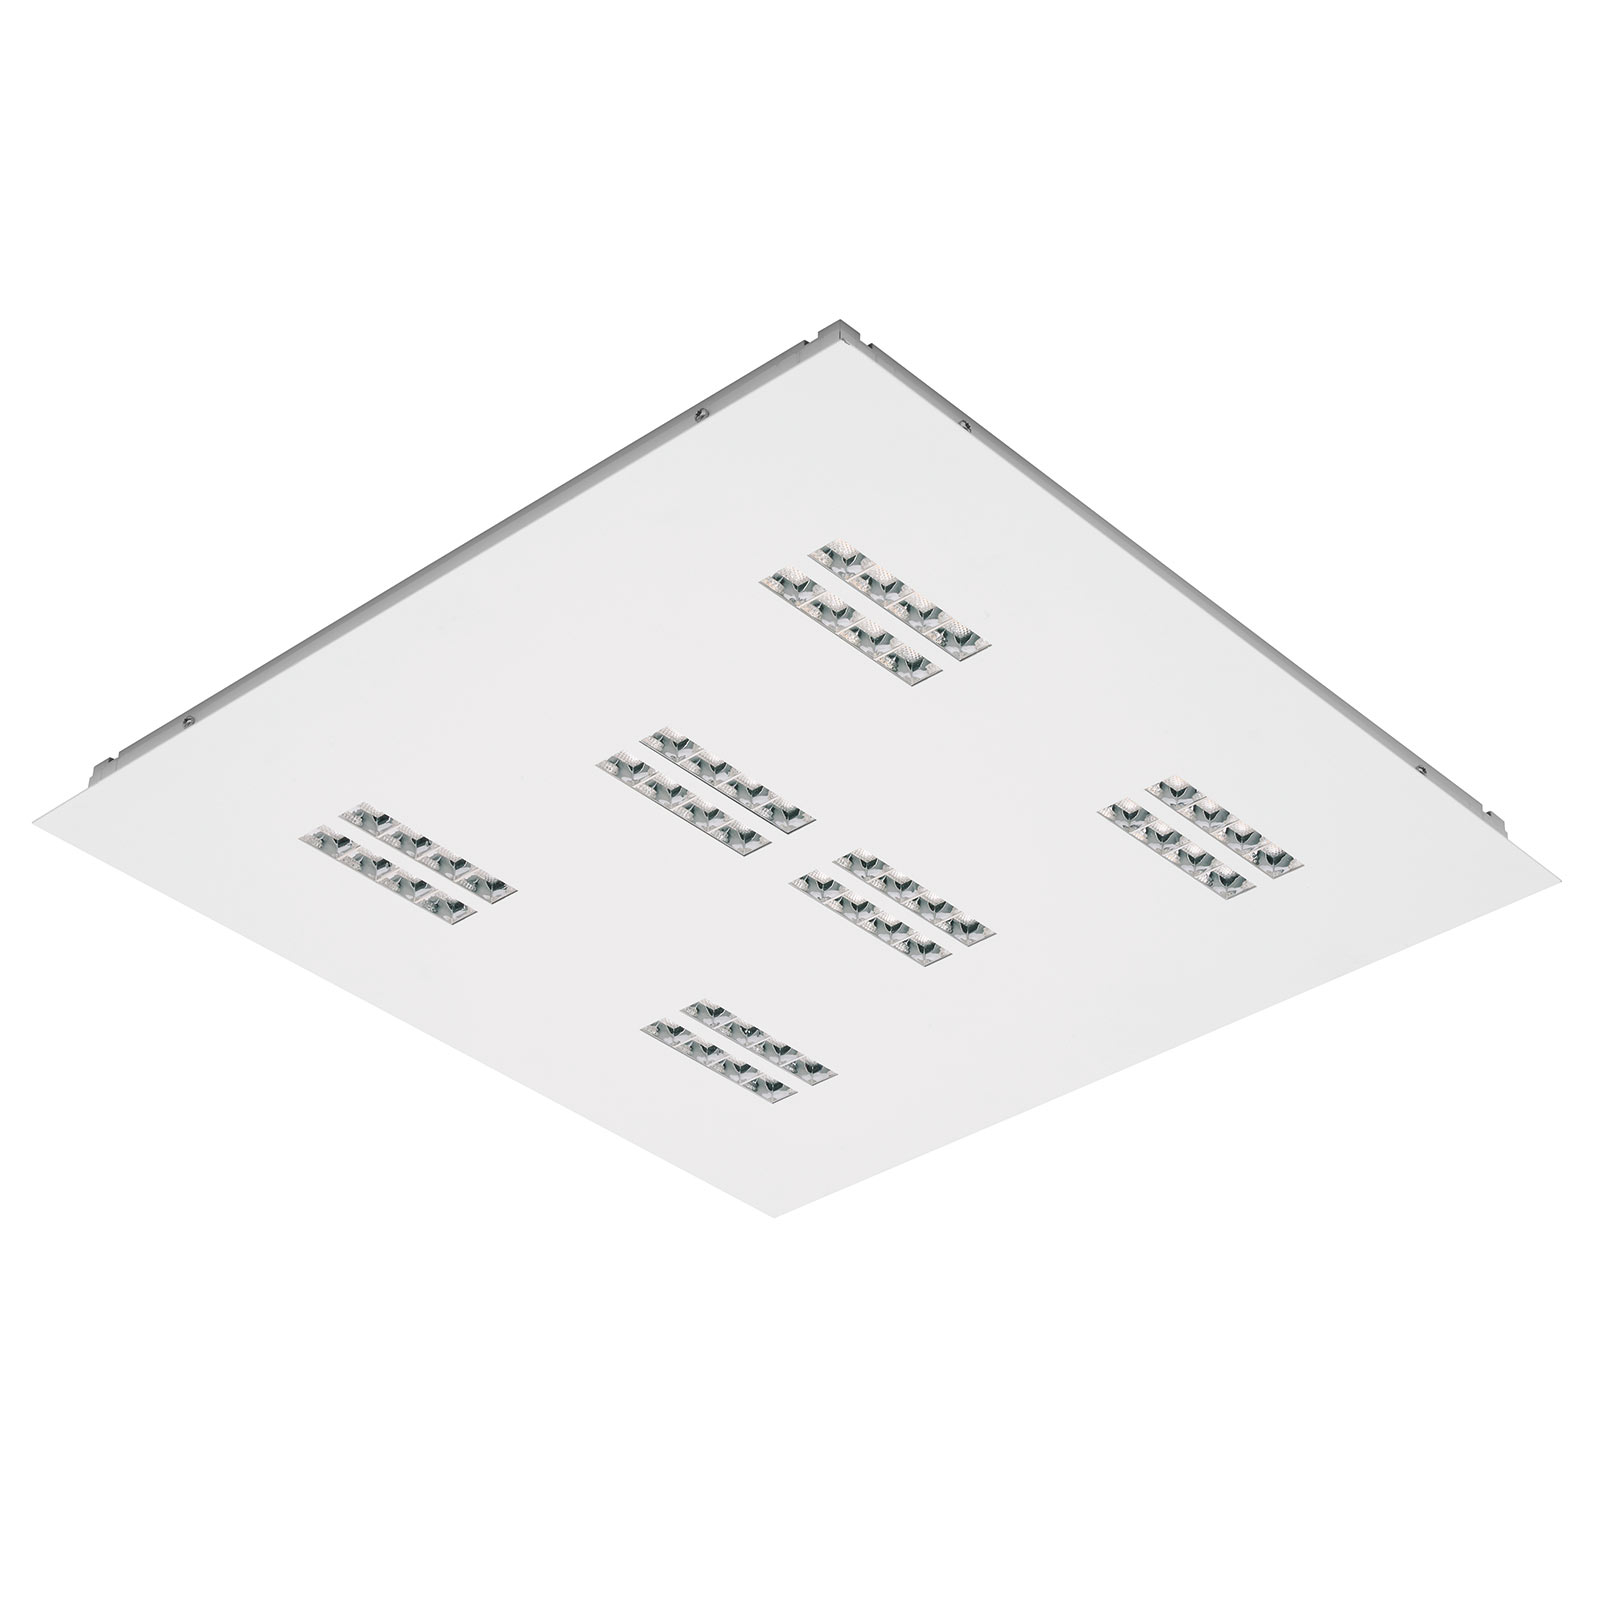 Panel LED Declan Recessed PB1 33W 3 000 K